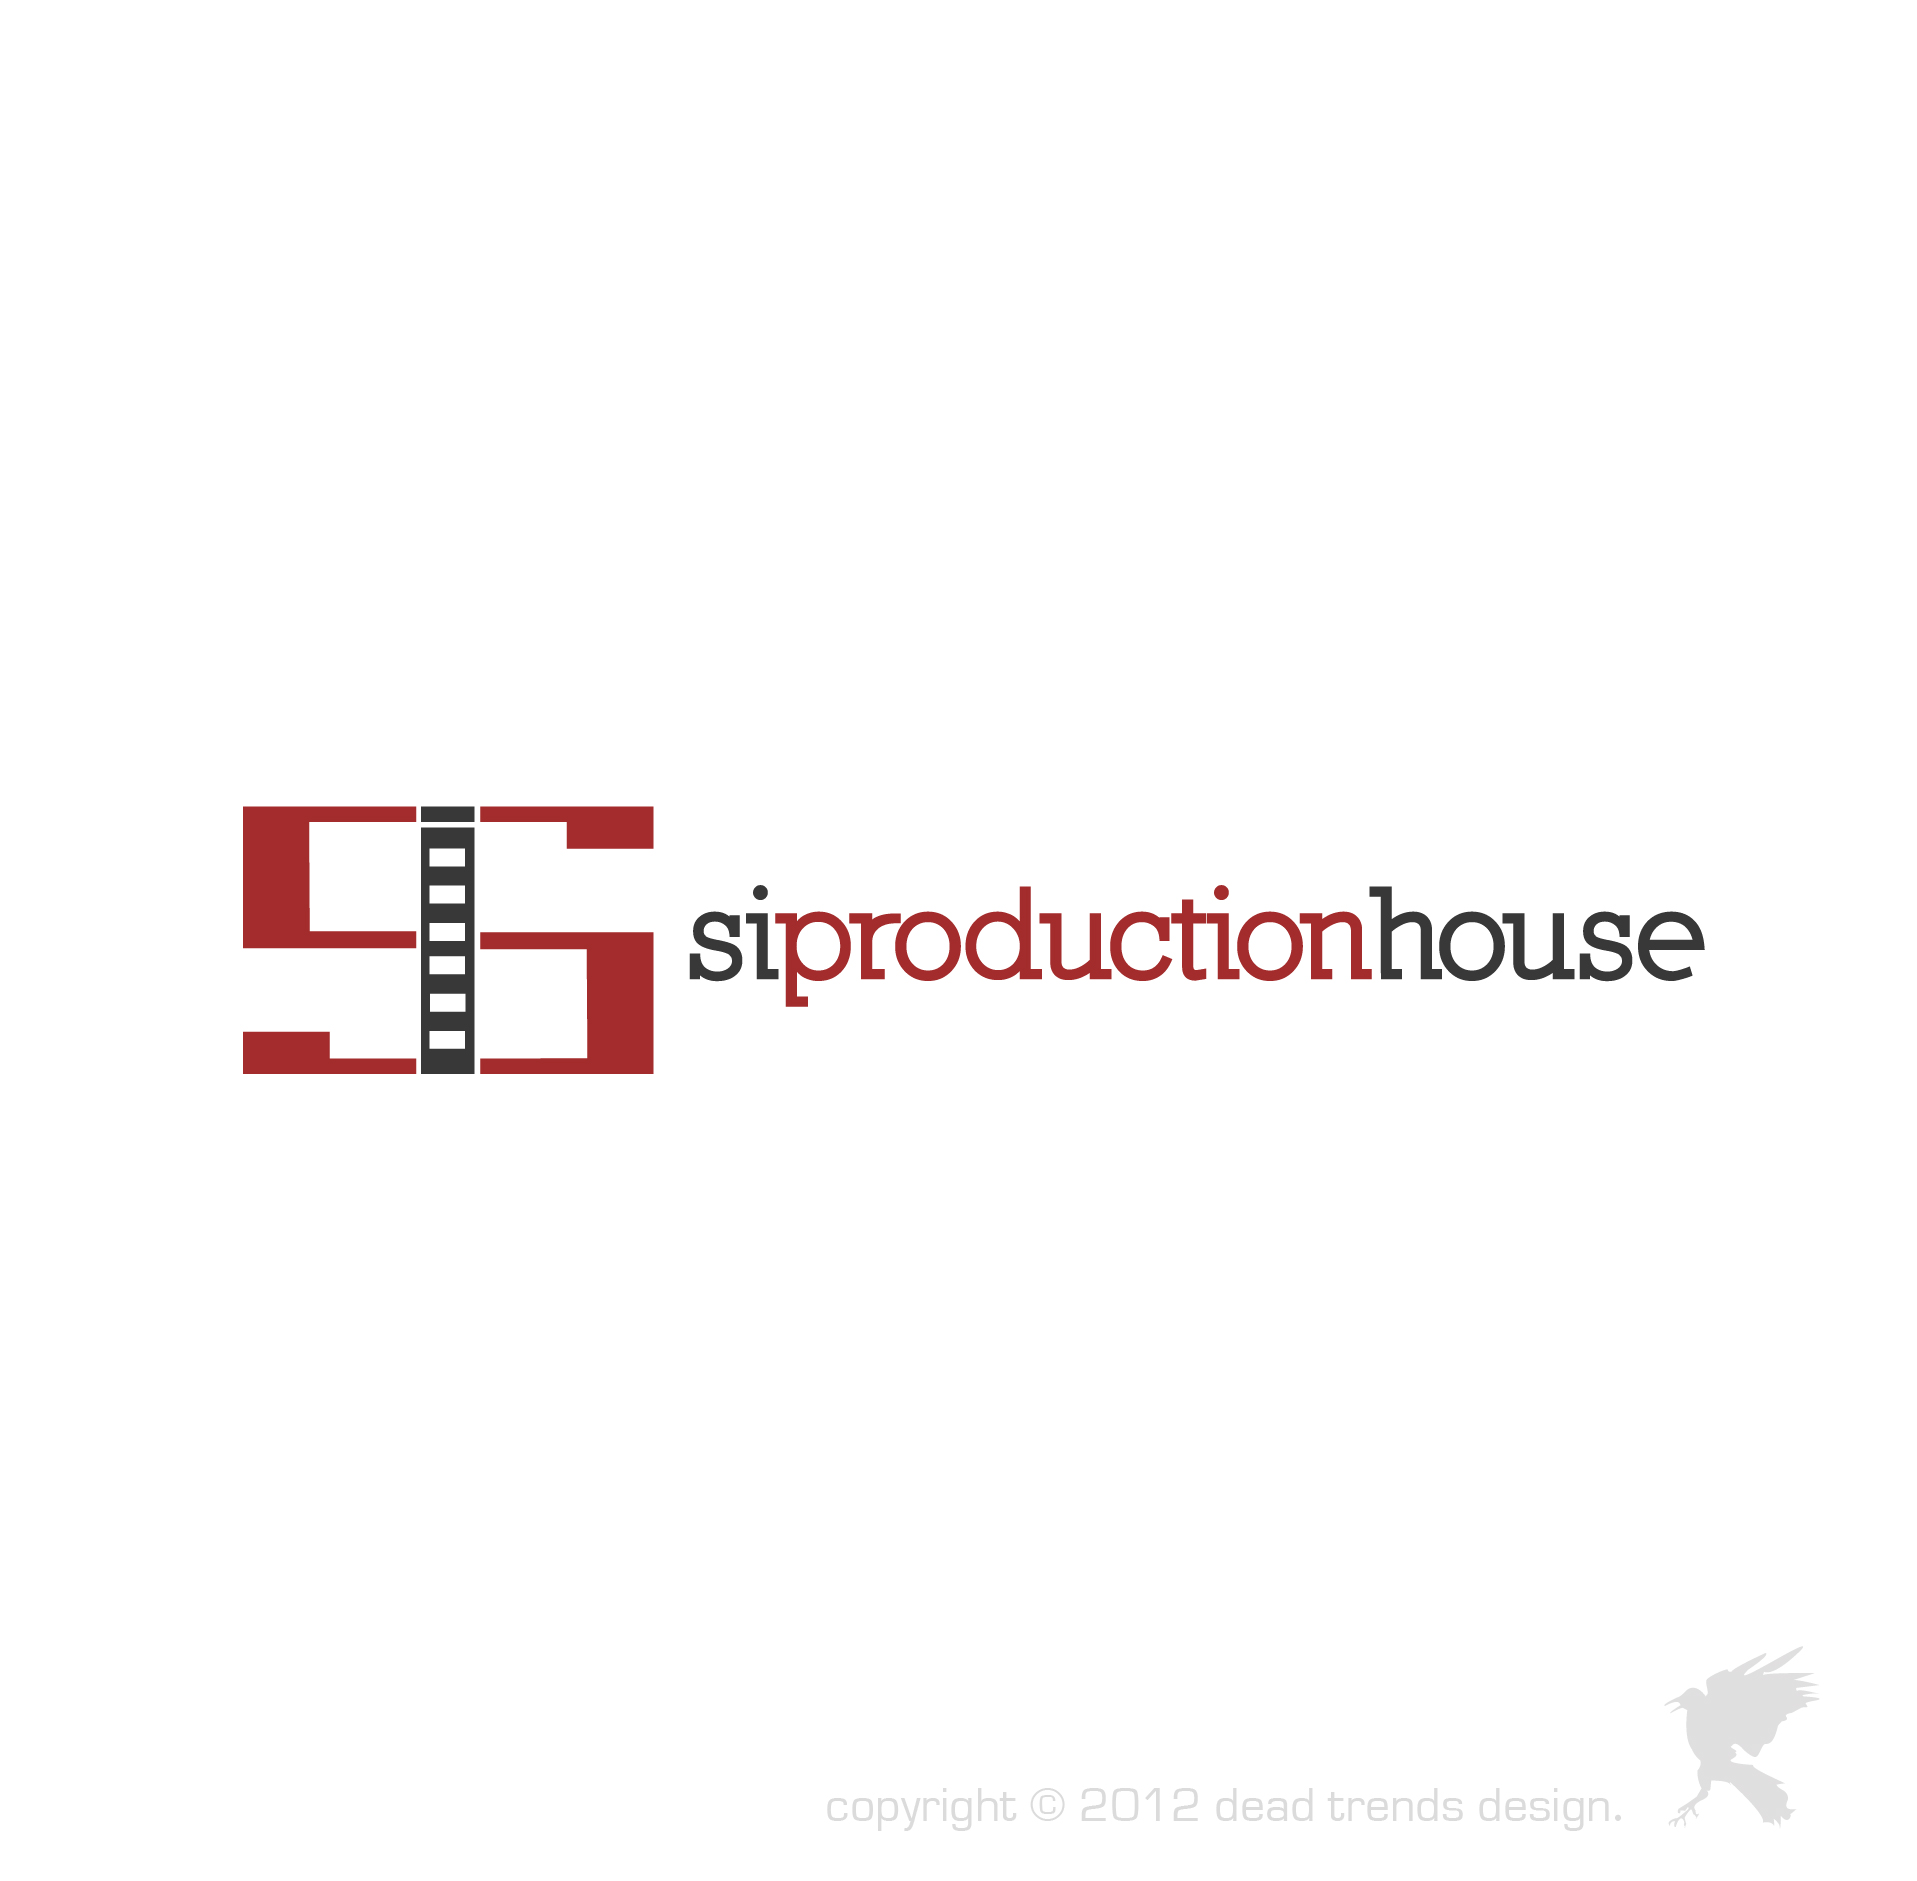 Logo Design by deadtrends - Entry No. 3 in the Logo Design Contest Si Production House Inc Logo Design.